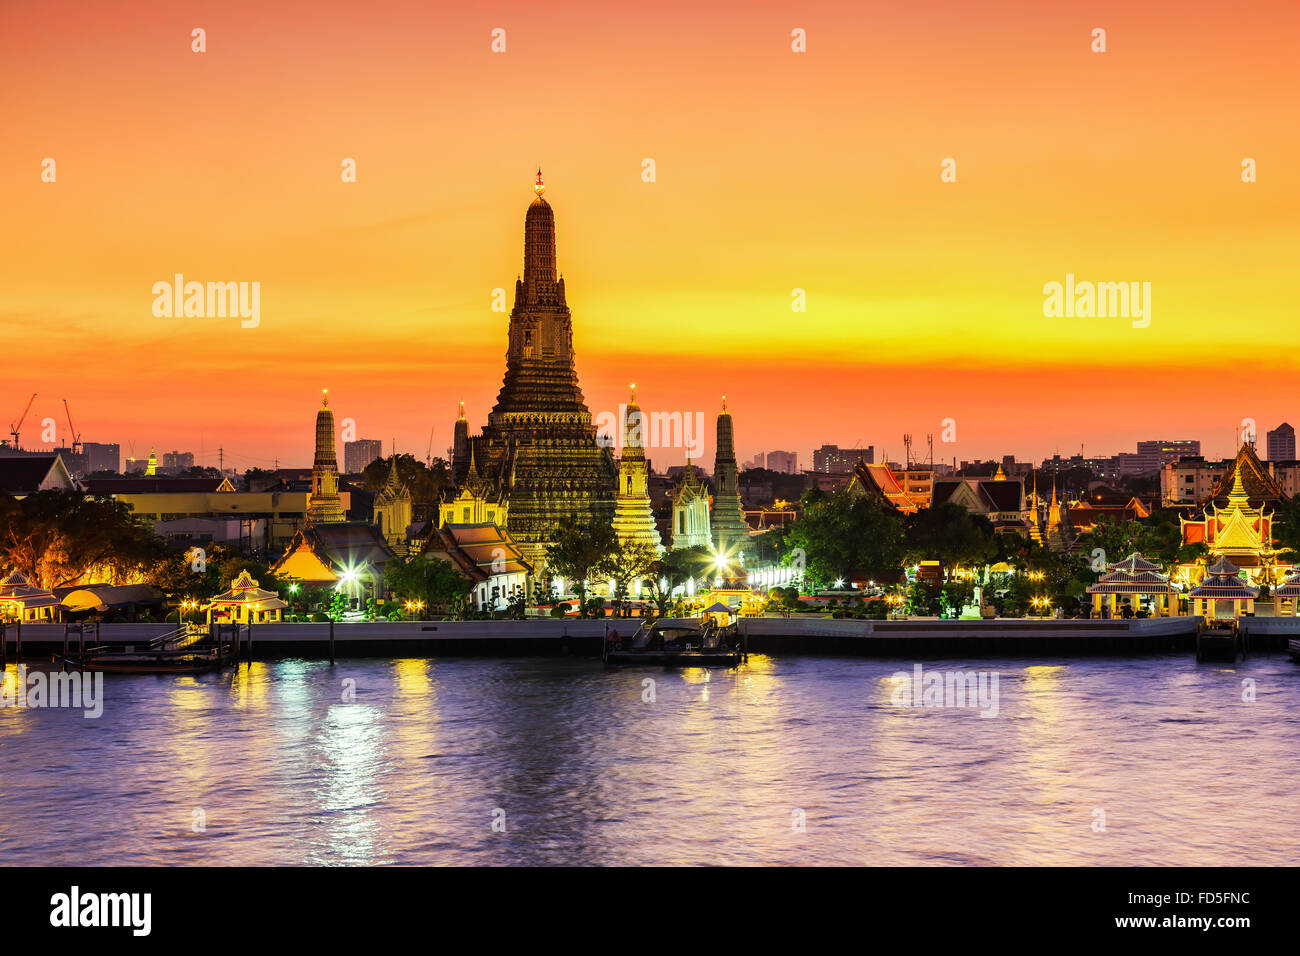 Bangkok, Thailand. Wat Arun Temple(Temple of Dawn) at sunset. - Stock Image